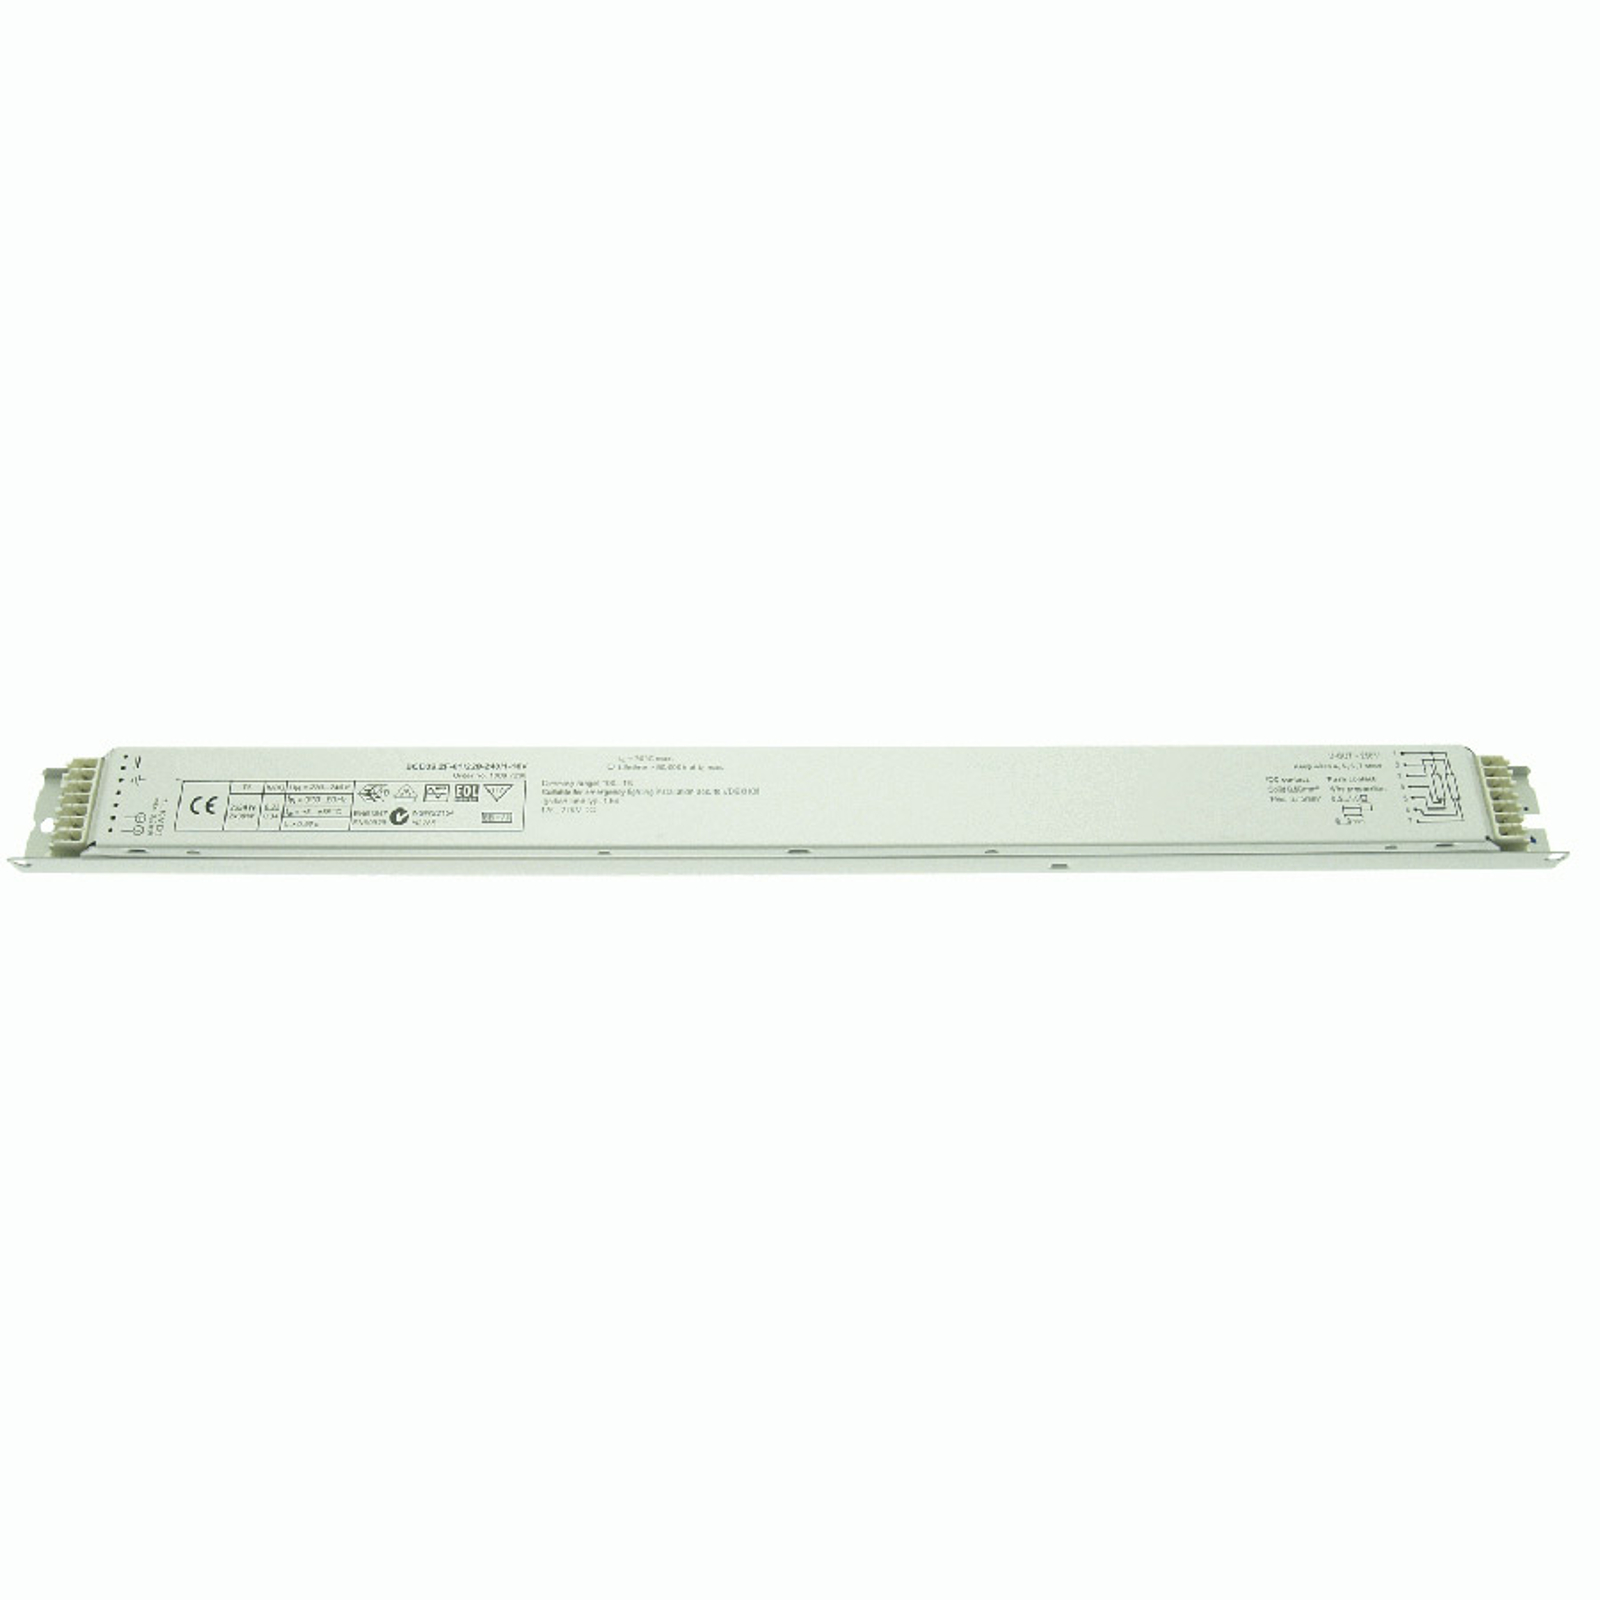 BE dimmable 2x24/39W T5 BCD39.2F-01/220-240/1-10V